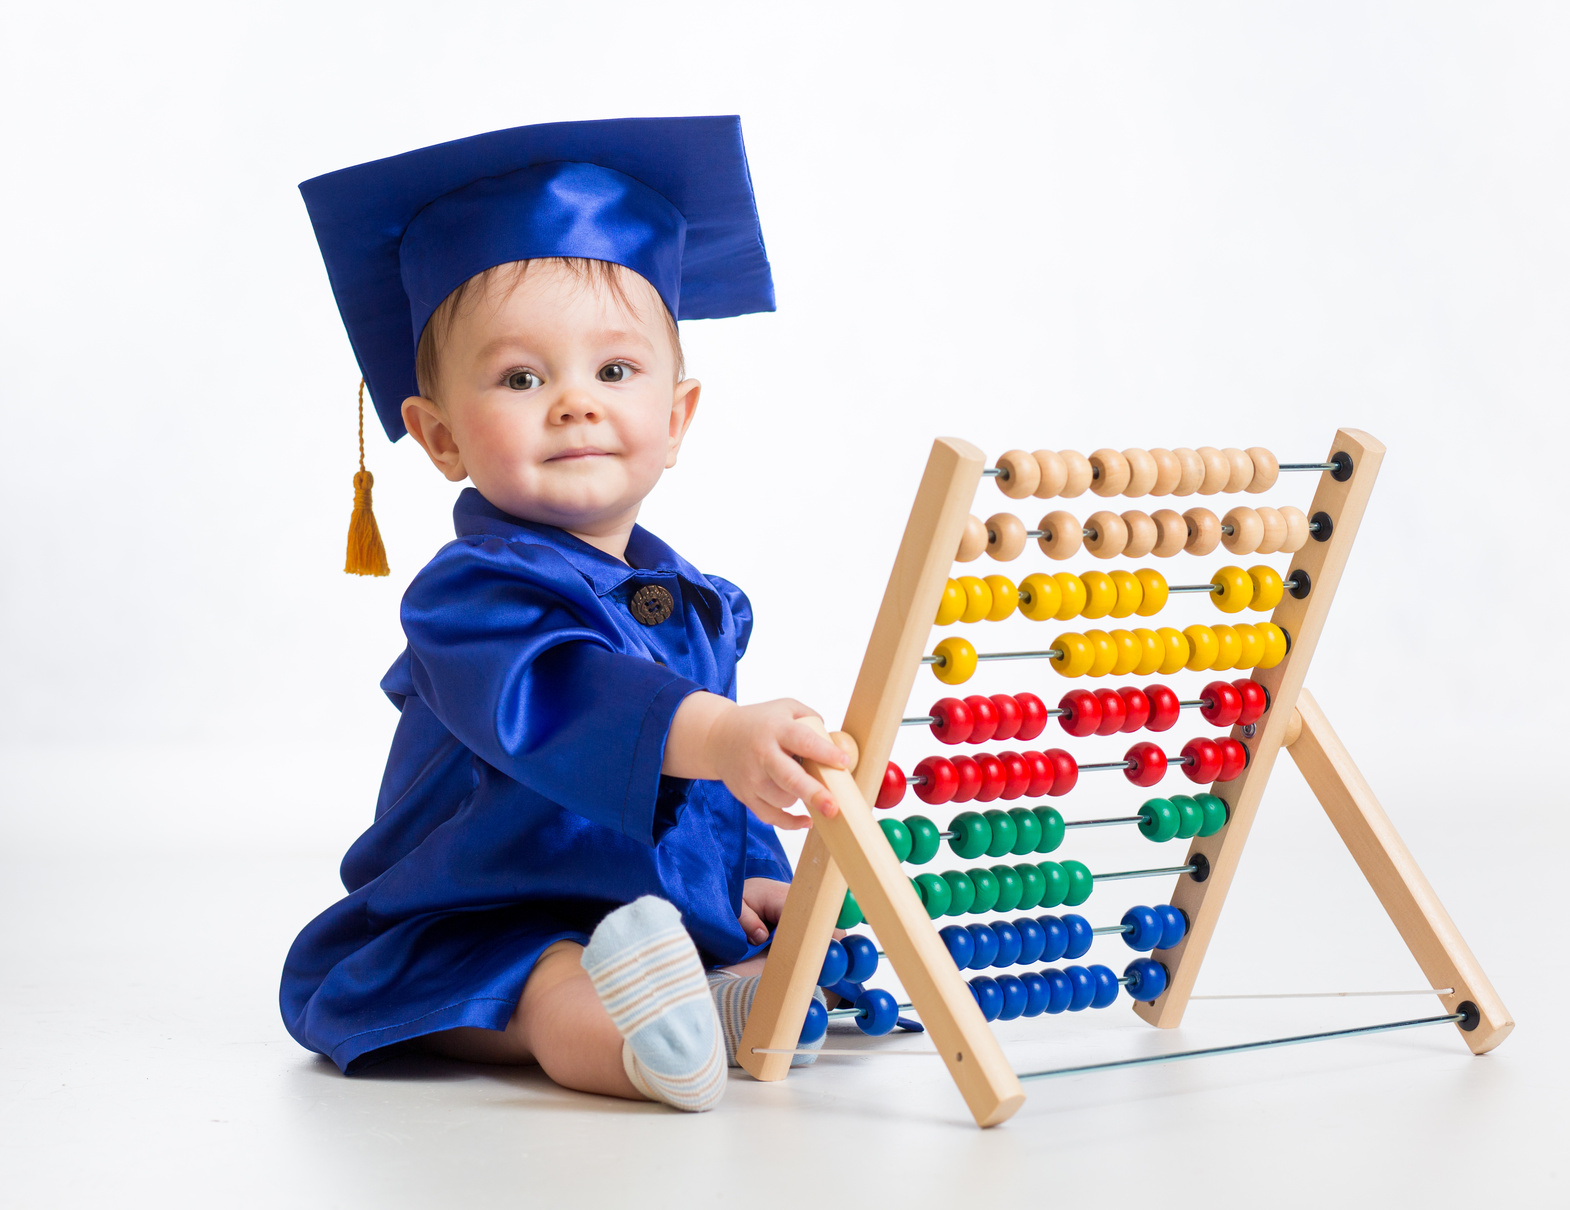 baby in a blue graduation cap and gown playing with an abacus